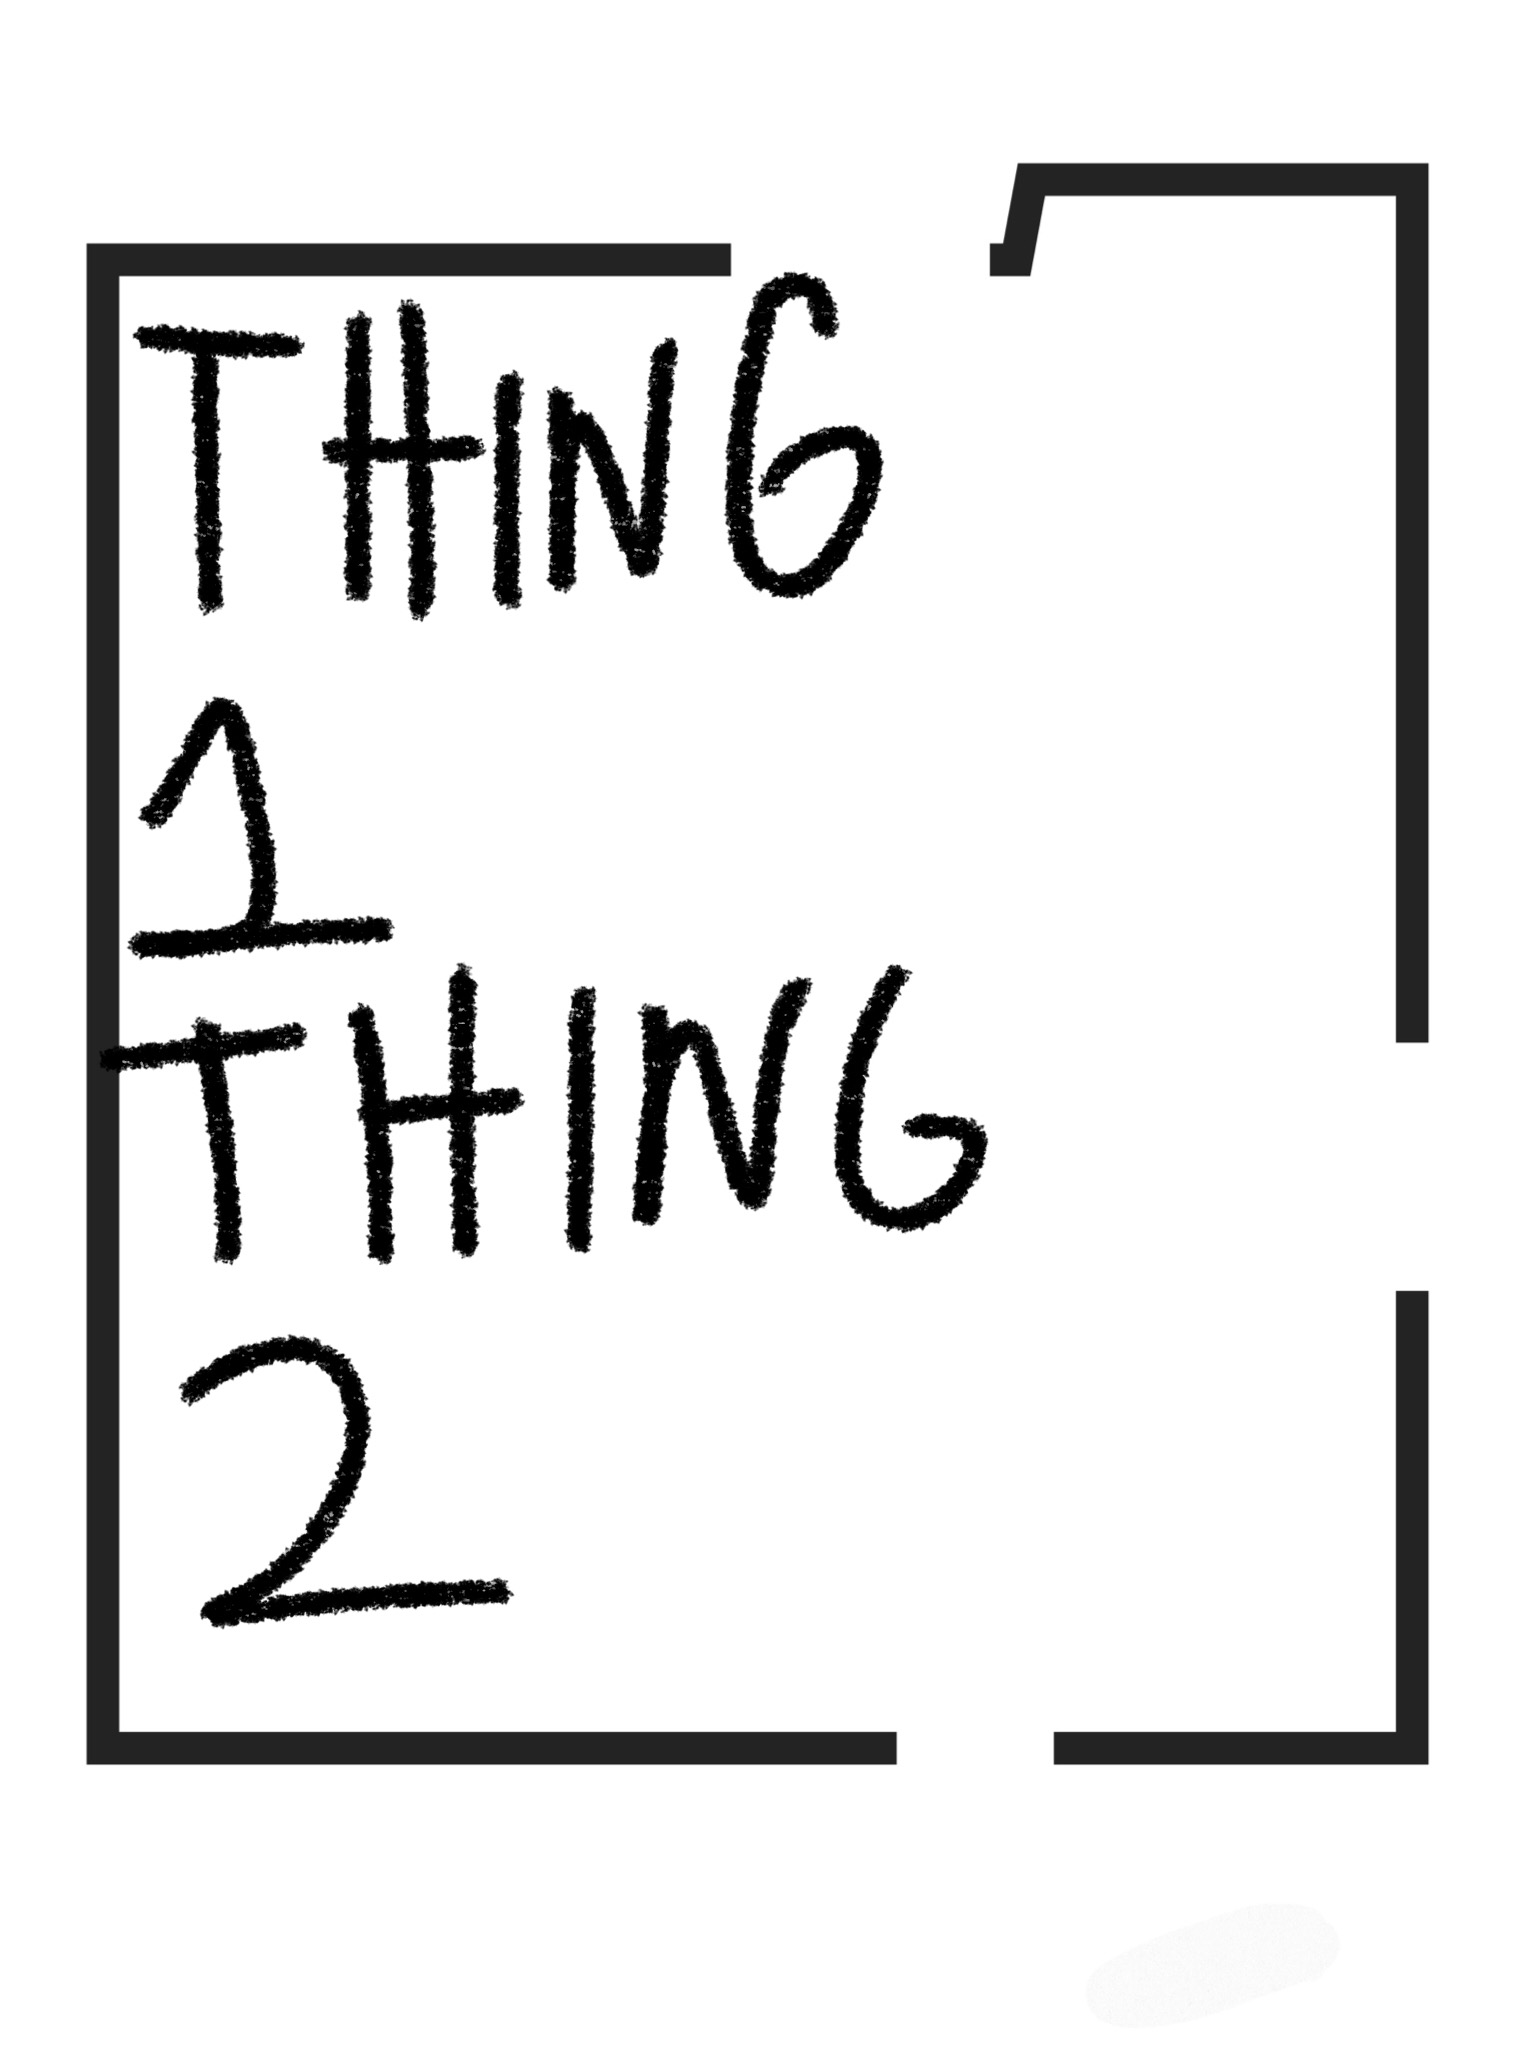 Thing 1, Thing 2     Josep Maynou   Opening November 17, 19-22  Finissage November 25 19-22  Nov 18 – 25, 10-19h  Büro BDP, Mareschstrasse 1, 12055, Berlin  www.brokendimanche.eu  The second exhibition and book in the series  a book, a room  is by Josep Maynou. Taking the idea that a physical room and a paginated book can reflect and expand on each other as locations for storytelling, the series is logically enhanced by Maynou's inclusion. As an artist who marries narrative scenarios to everything from sculptures, installations and furniture design the book here becomes a distillation of something akin to prompt cards for the artist's own performative storytelling.  Maynou's exhibitions are full of the familiar, the functional even, the go-ahead-take-a-seat kind. For this exhibition the narrative prompts collected and collated in the book spill over and find articulation the environment the artist has created in the gallery space. One enters the space and it feels relaxed, a domestic setting: Maynou transposes the commonplaceness of a couch say, or a fridge and intersperses among them his signature brocaded Morroccan rugs, lamps he has fashioned himself, posters for possible movies yet to be made. In between are a myriad of artefacts and assembles, from ashtrays to joint holders and objets trouvé, all are full of the artist's anecdotes and tales. The space of the page as much as the gallery is home to these stories.   Josep Maynou  (born 1980 Barcelona) is a Berlin / Barcelona / Morocco based artist working in drawing, sculptural assemblage, textile, video, and performance. His multidisciplinary approach comes together as a form of contemporary storytelling that situates itself beyond the traditional art formats, often leading to installations in contexts such as TV repair shops, private apartments, abandoned spaces, laundromats or second-hand stores. He studied Fine Arts at UB (Barcelona), Facultade de Belas Artes Porto (Porto) and Middlesex University (London). His work has been shown internationally, including at University of Oxford (UK), PS122 (NYC), with Beverly's at the Material art fair (Mexico City), Bombon Projects and Fundació Antoni Tàpies (Barcelona), Le Commun( Geneve), Lehmann and Silva (Porto), Galerie Suvi Lehtinen, and Transmediale (Berlin), and recently in 'Pane per Poveri' a collaborative project that ran during the opening of the Venice Biennial (Venice, Istanbul, Athens).   The series   a book, a room  , is conceived and curated by John Holten as several solo exhibitions or interventions in our gallery space at Büro BDP, with each having an accompanying publication. The first in the series was 'like biting into sugarcane' by Simon Speiser in May 2017. The intention and aspiration is to give artists and writers the chance to place within both gallery and paginated spaces their work, and to explore the possibilities for narrative, storytelling and text within a visual, performative or otherwise physical practice; or indeed, for writers, to flip this and ask vice versa: how can writers extend literature into space?